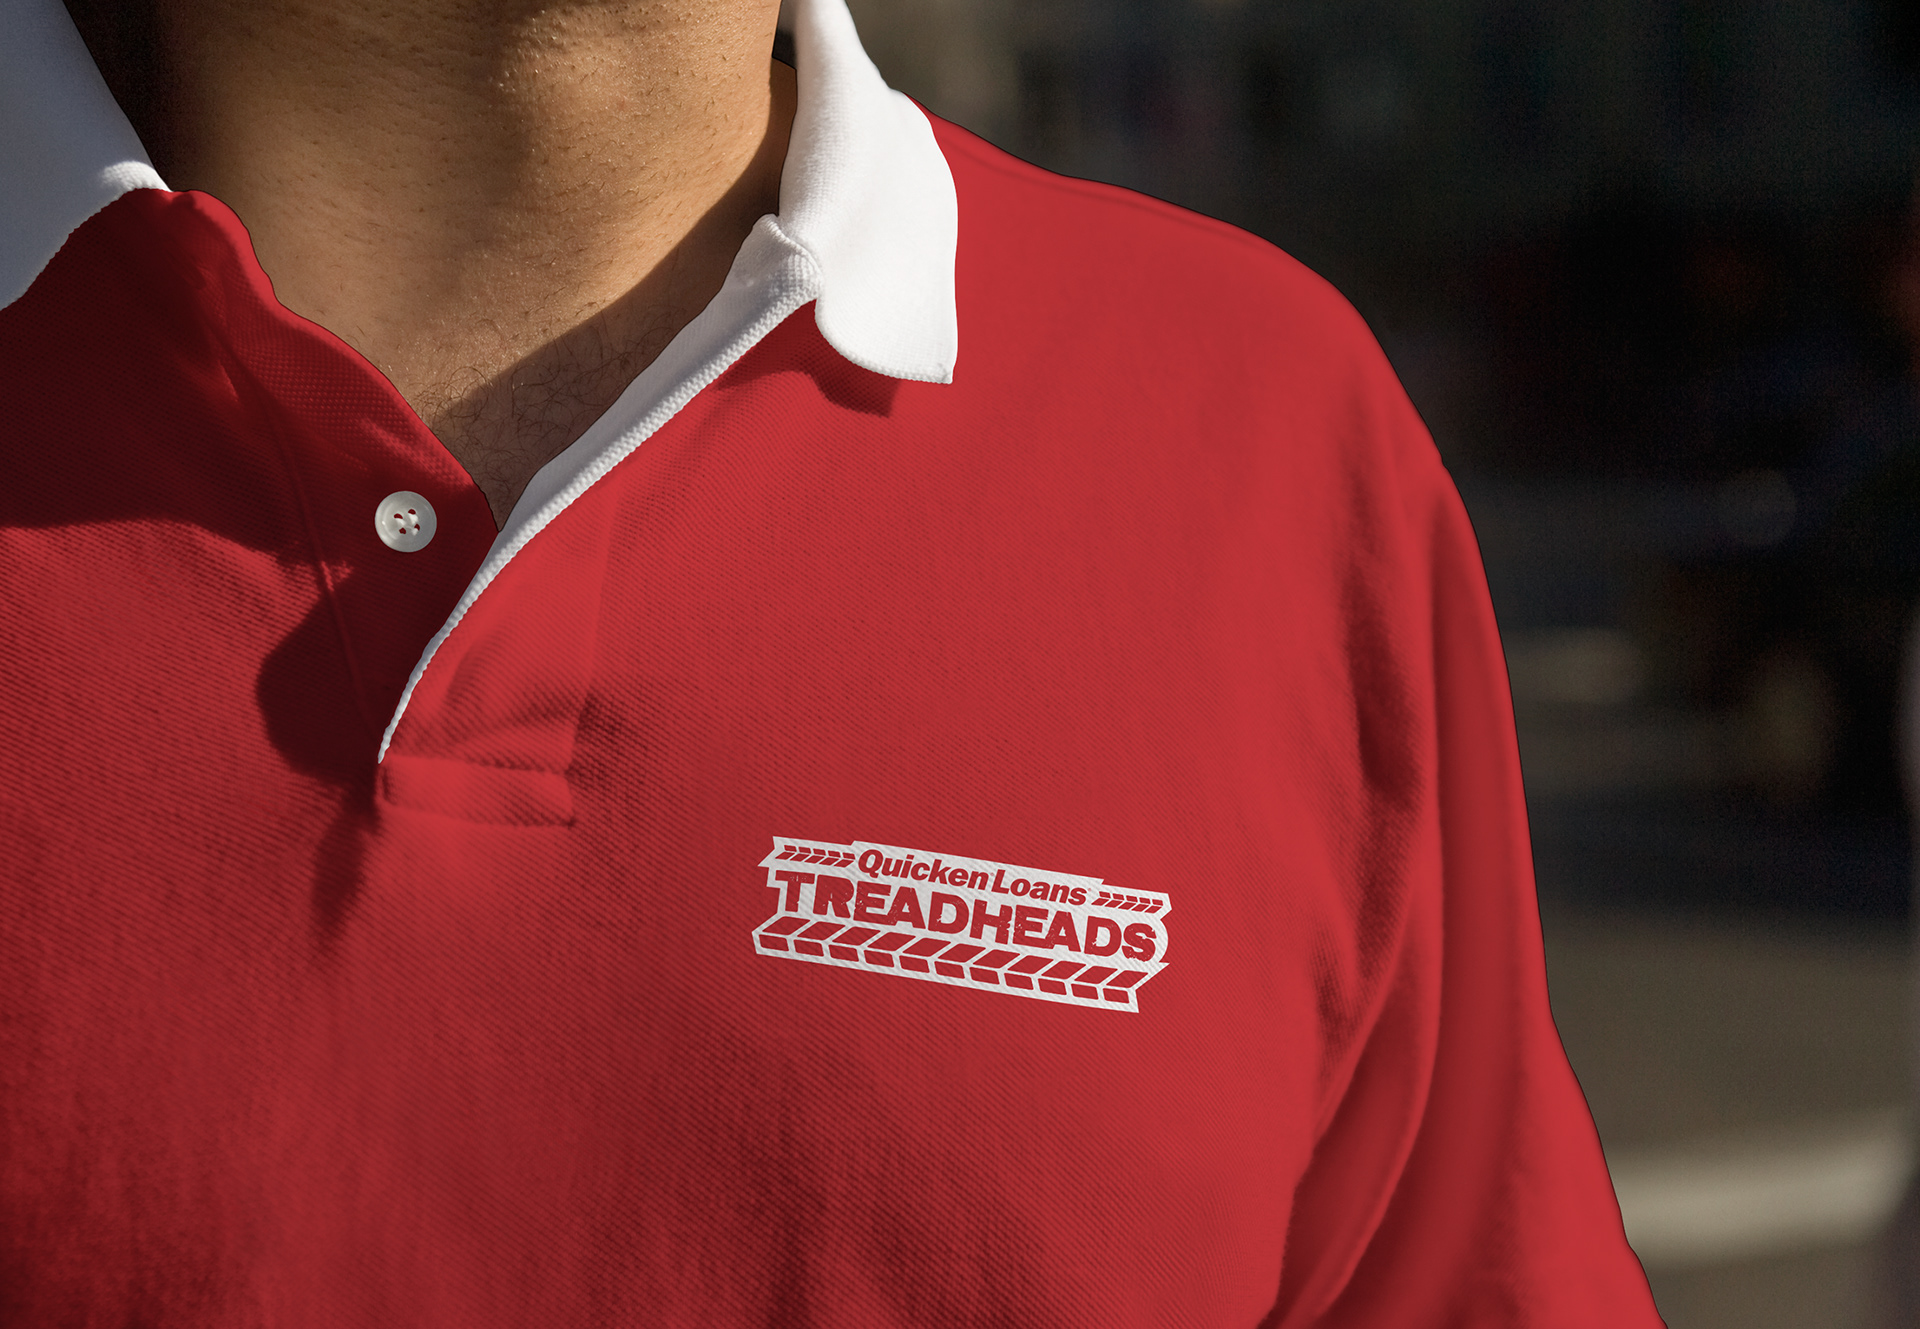 quicken-loans-racing-treadheads-shirt.jpg